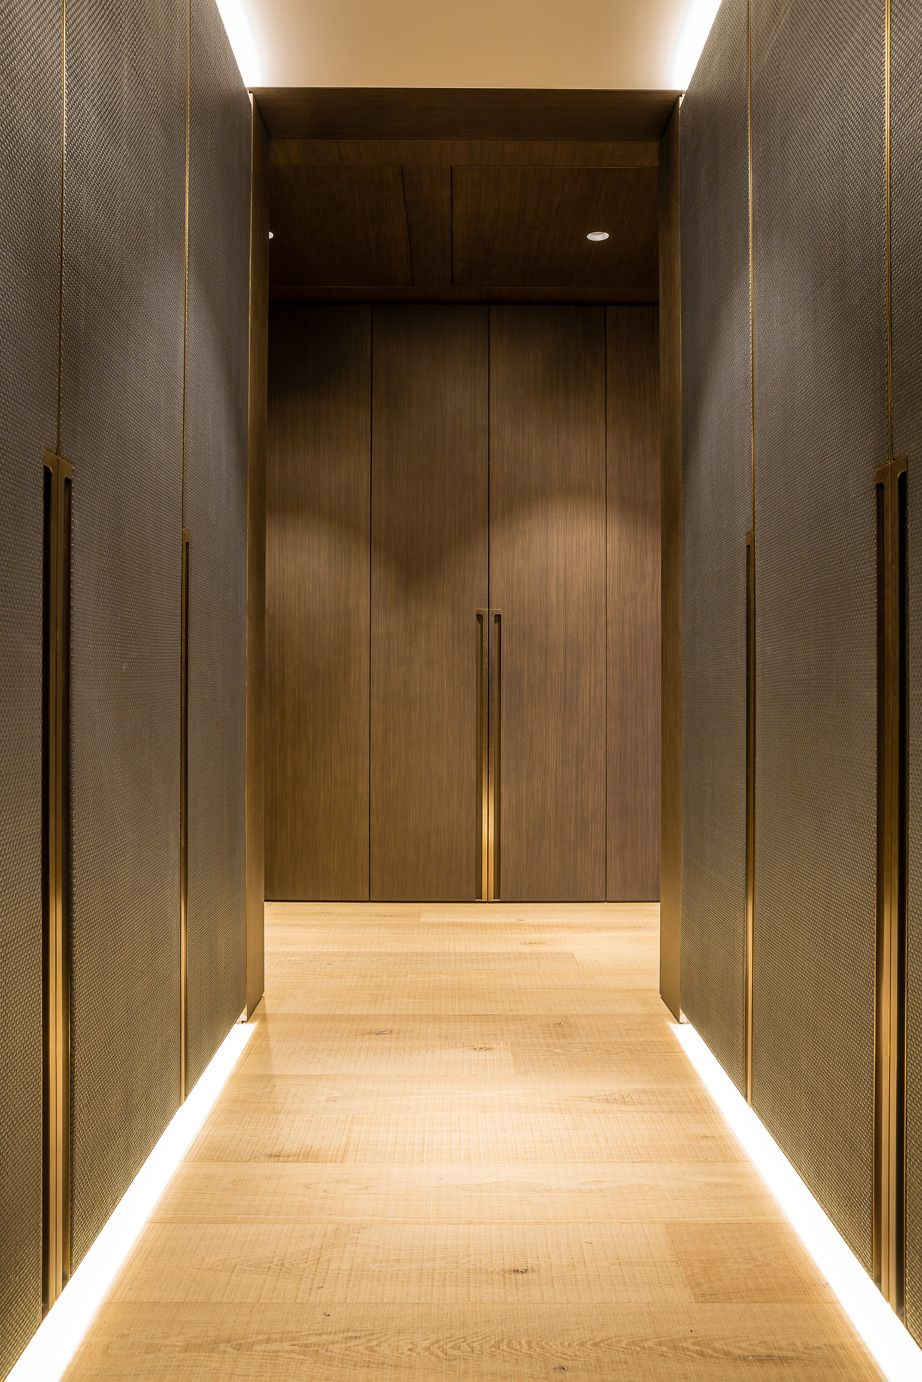 Case study - One Hyde Park, Knightsbridge. Design - Grangewood Finchatton. Joinery - INTERIOR-iD. Dressing Room with antique brass metal detailing, bespoke recessed handles fully integrated into framed wardrobe doors with woven leather and dark stained Zebrano timber.